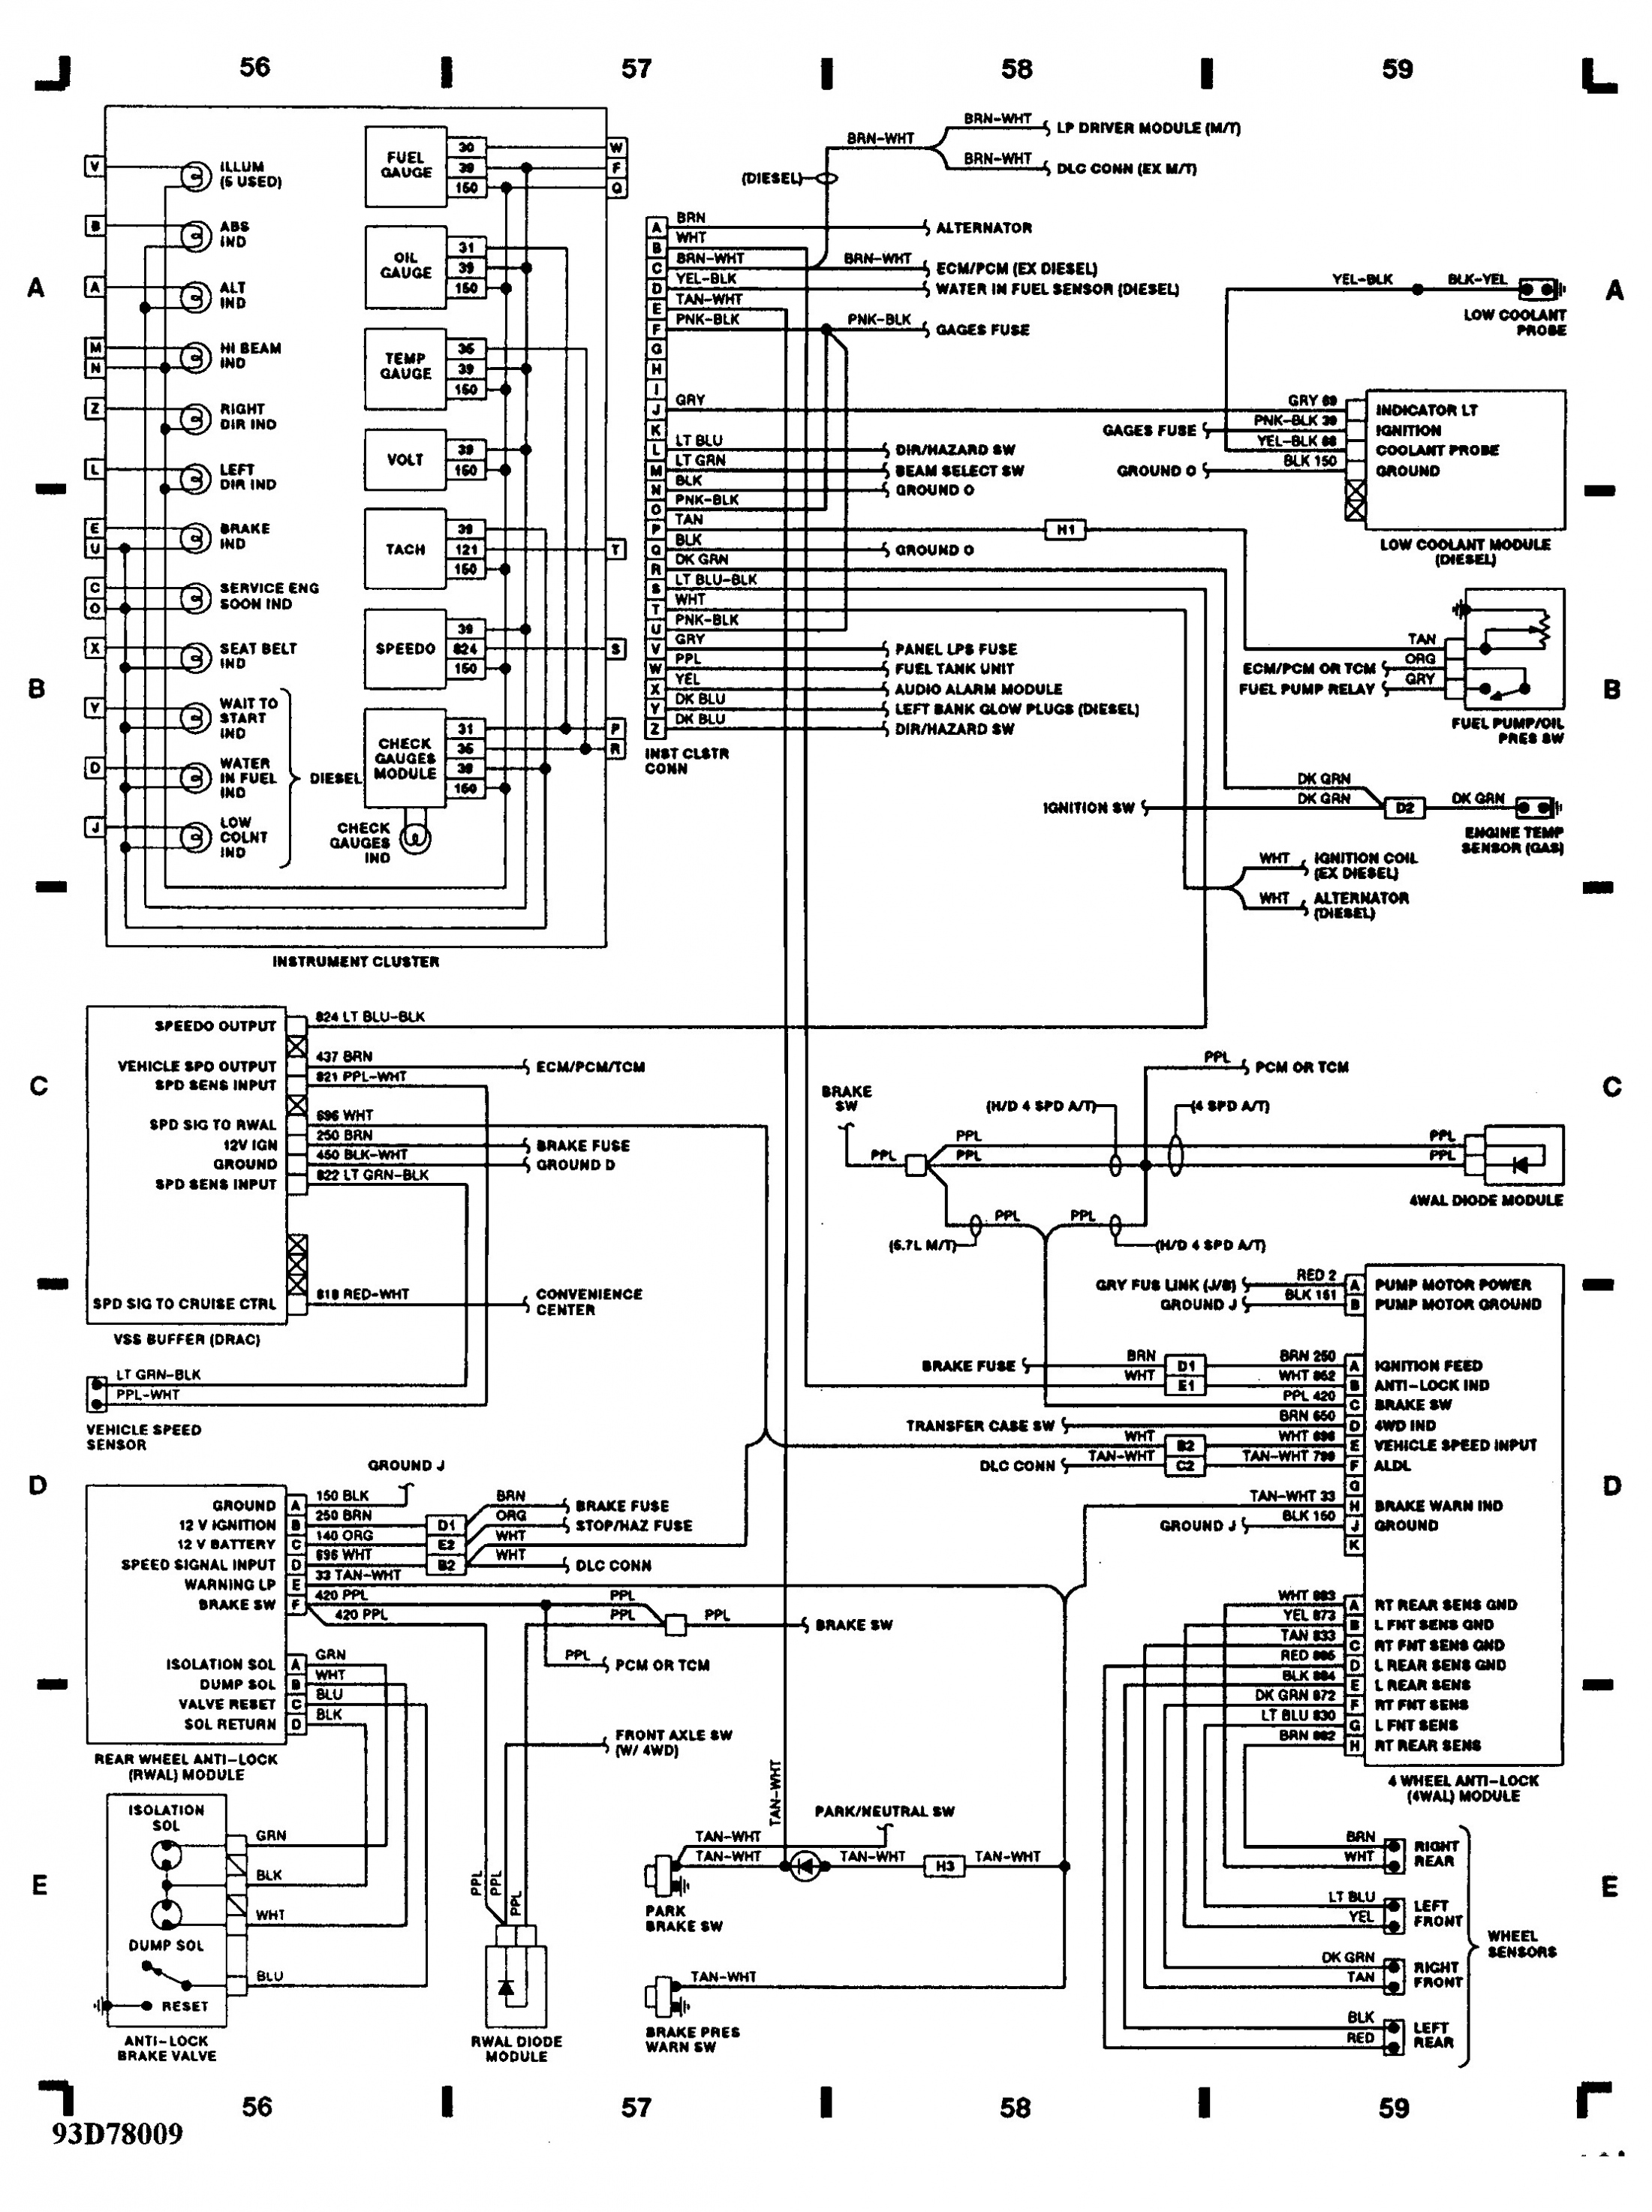 2001 Dodge Ram 1500 Trailer Wiring Diagram New Wiring Diagram Ifor - Dodge Ram Wiring Harness Diagram